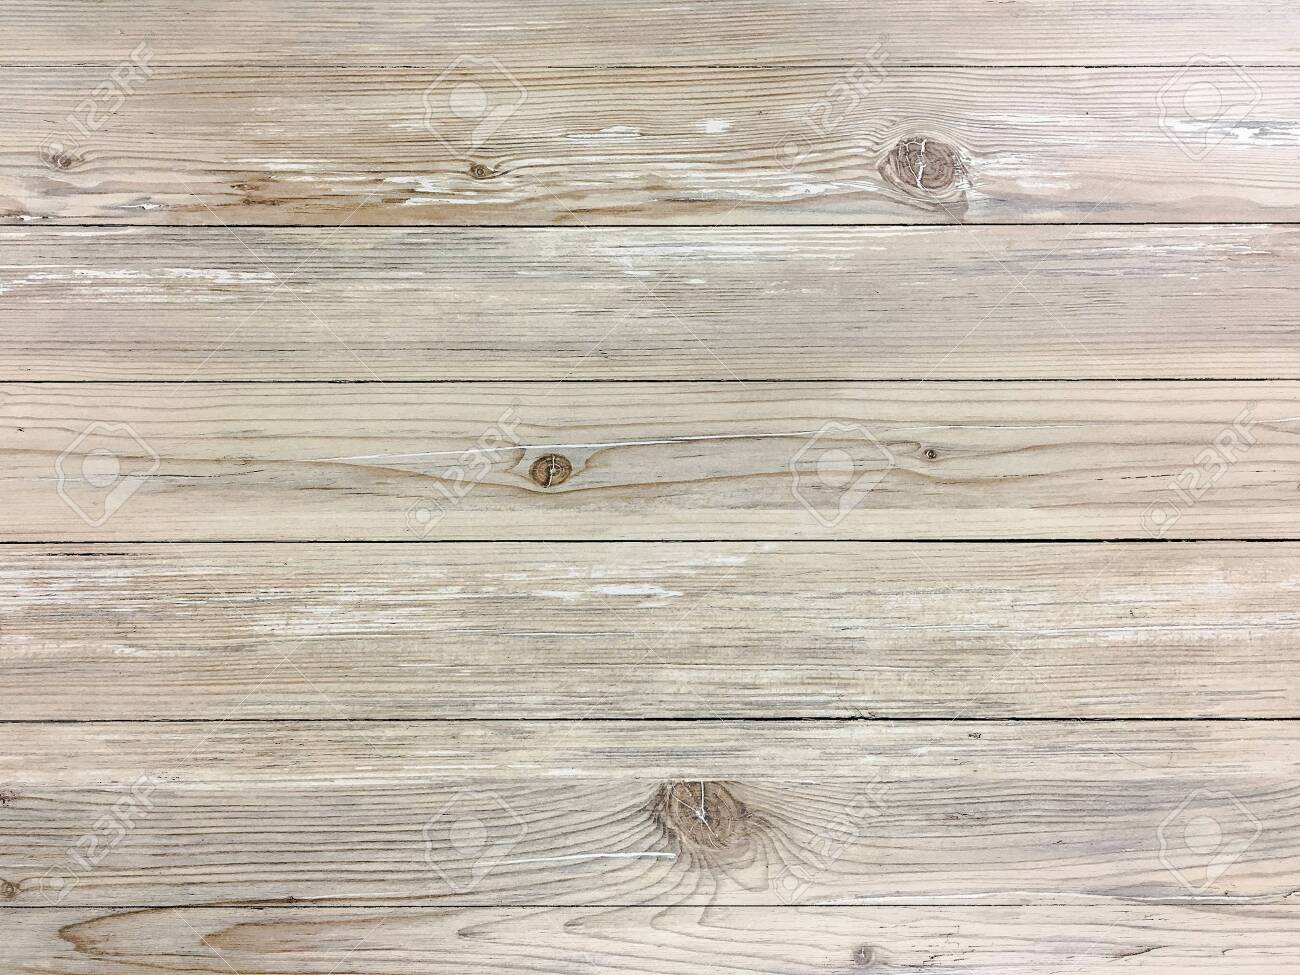 brown wood texture, light wooden abstract background - 123176613